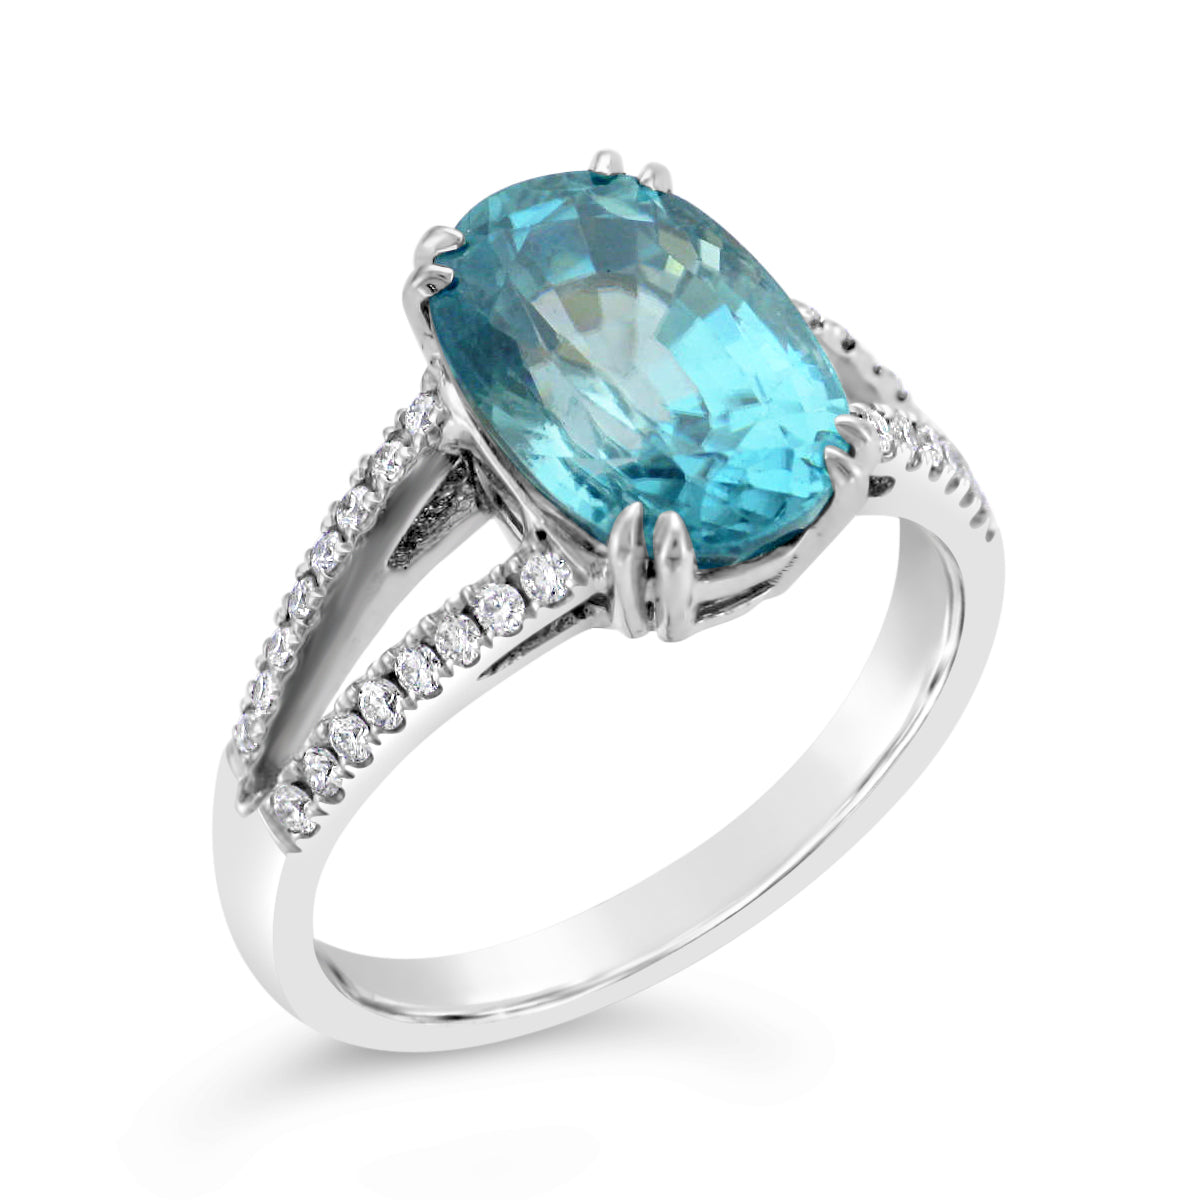 Ladies Custom 14k White Gold Blue Zircon Ring